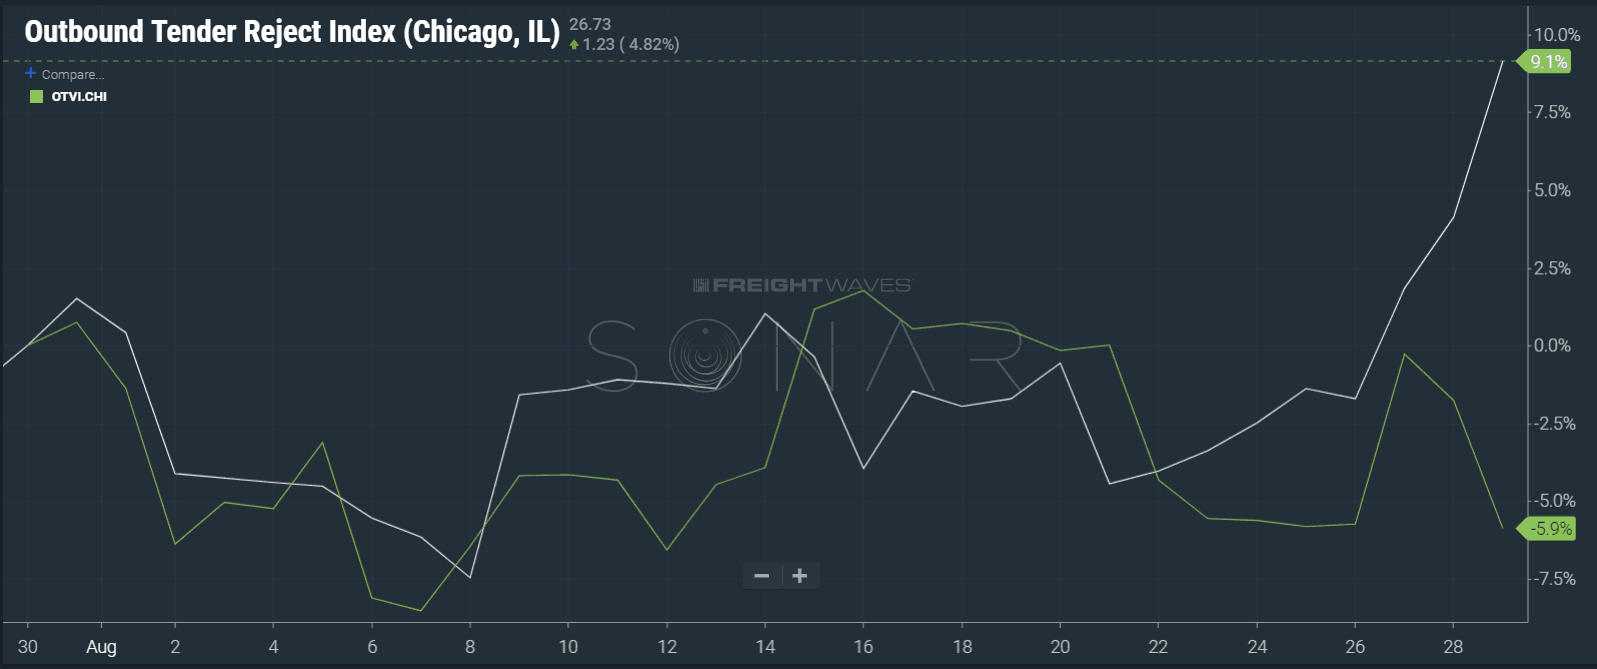 Chicago outbound volume decreasing and tender rejections increasing over the past 2 days. ( Chart: FreightWaves SONAR )